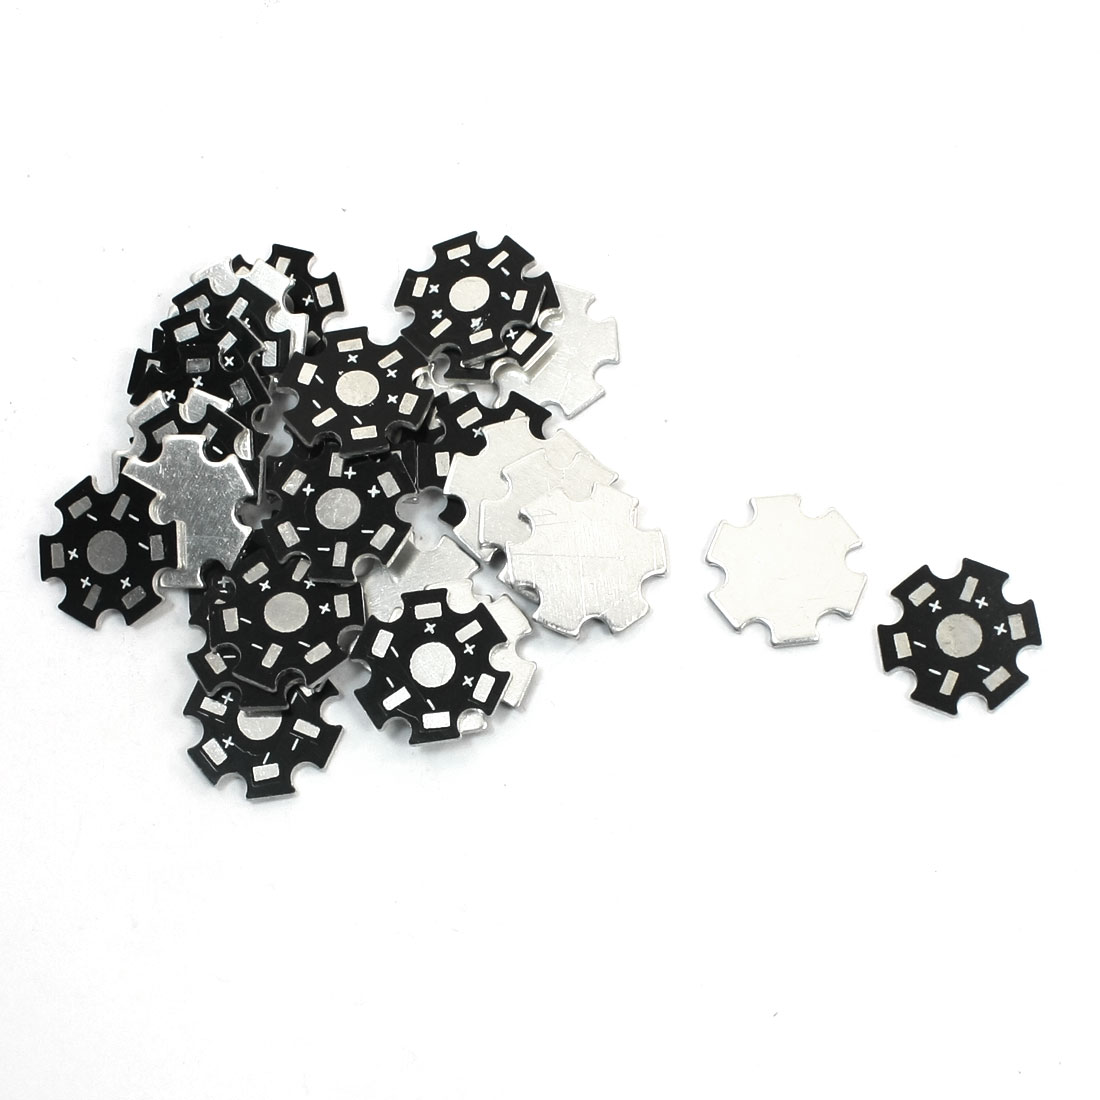 30pcs 20mm Black Printed Star Shaped Aluminum PCB Circuit Board for 1 x 1W/3W LED in Series